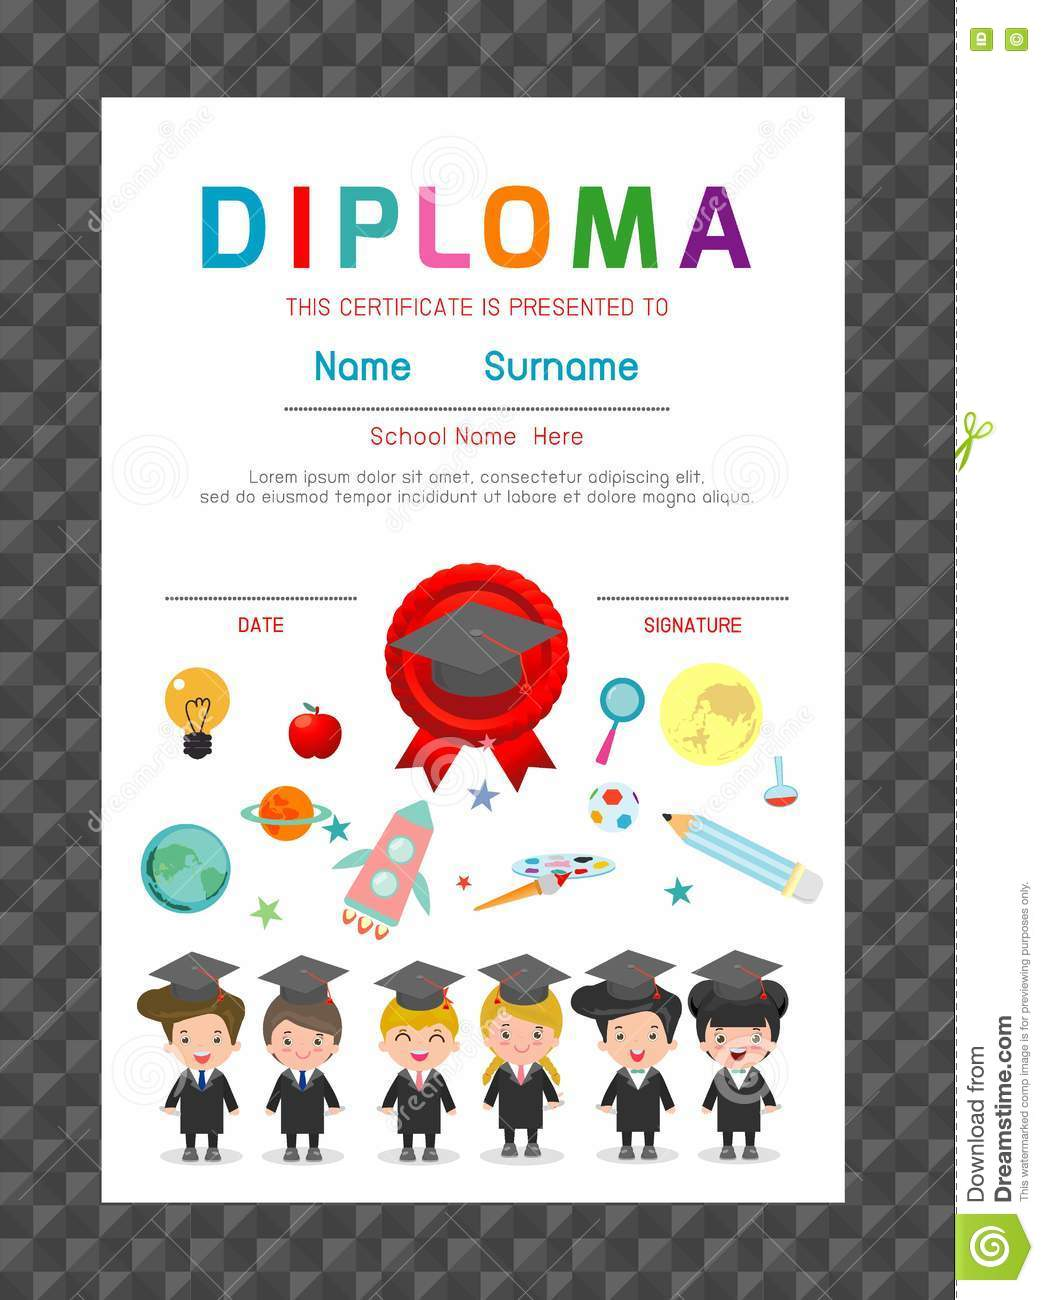 download certificates kindergarten and elementary preschool kids diploma certificate background design template stock vector